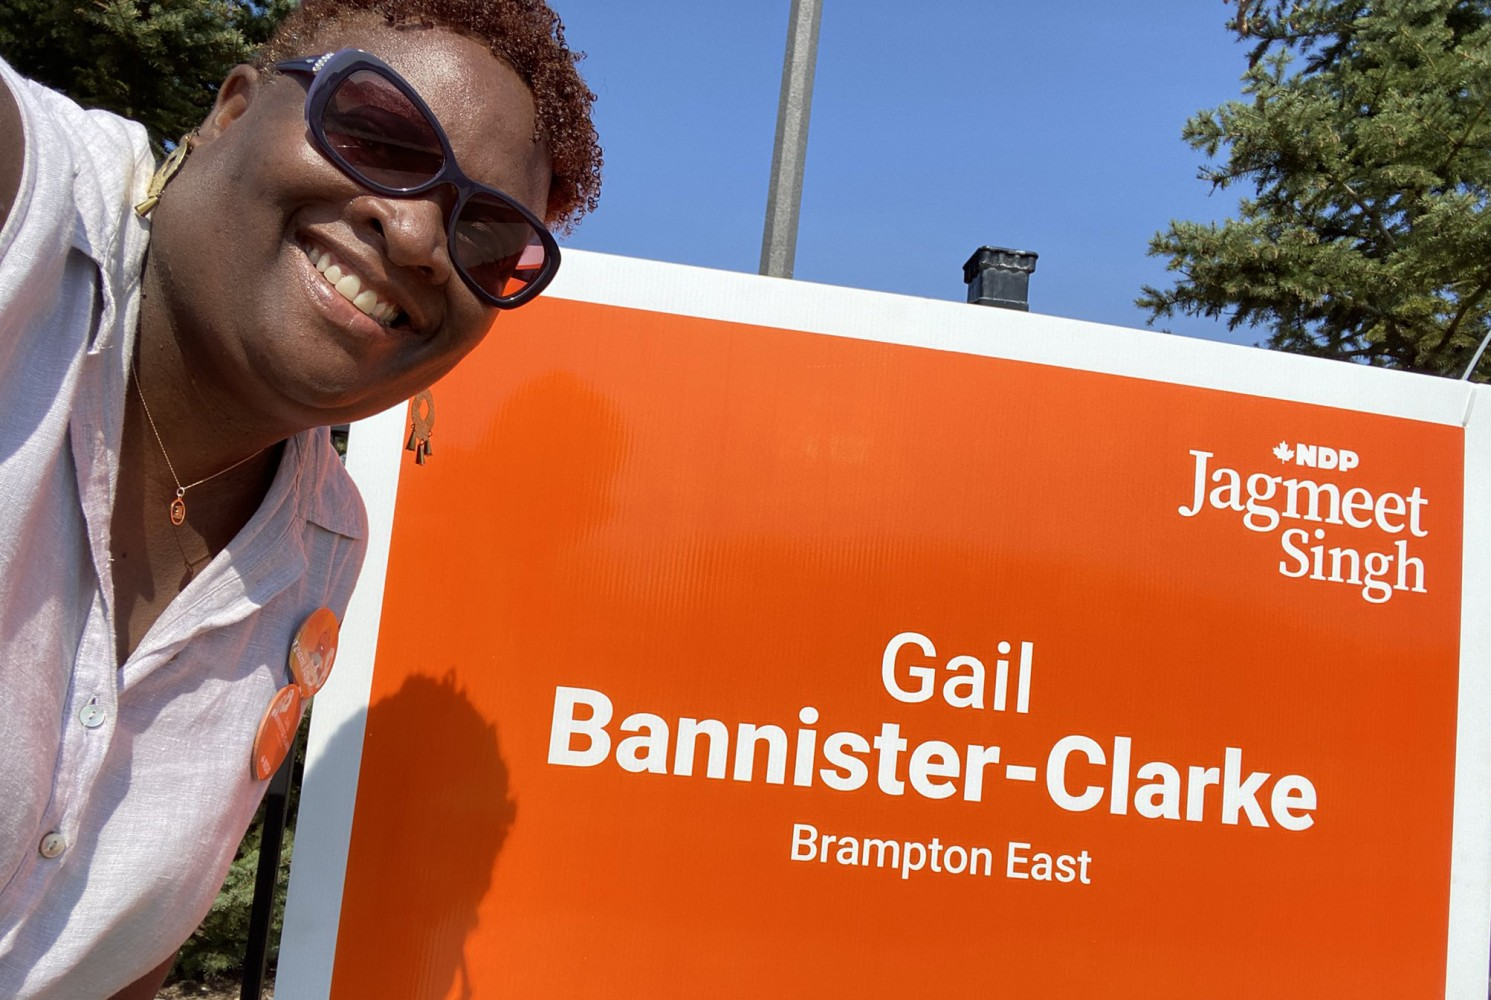 Education leader vows to clear the barriers to get Brampton its fair share